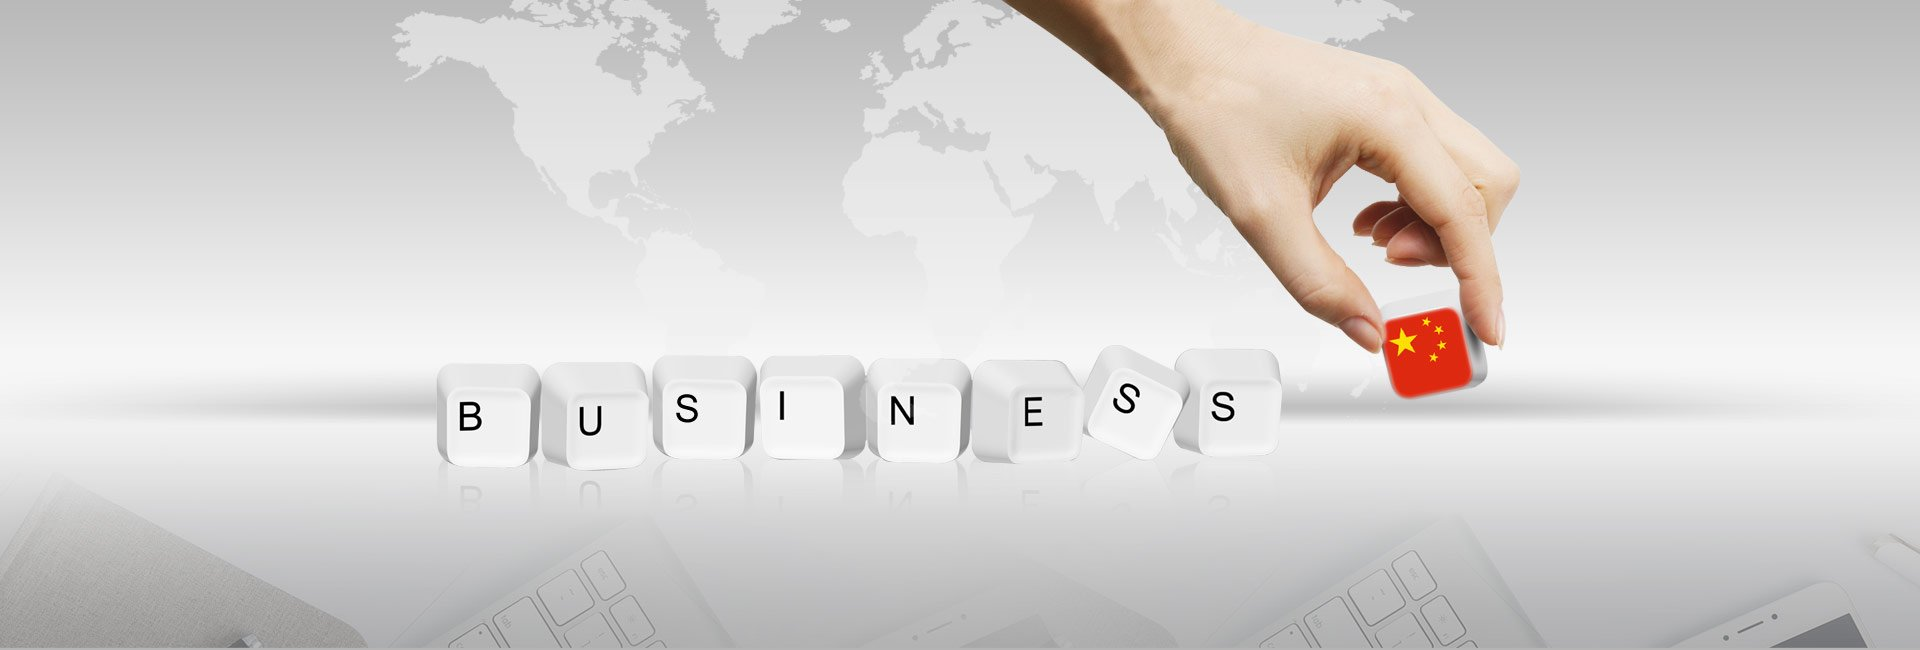 Open Company & Start Your Business in China -More Than Registration